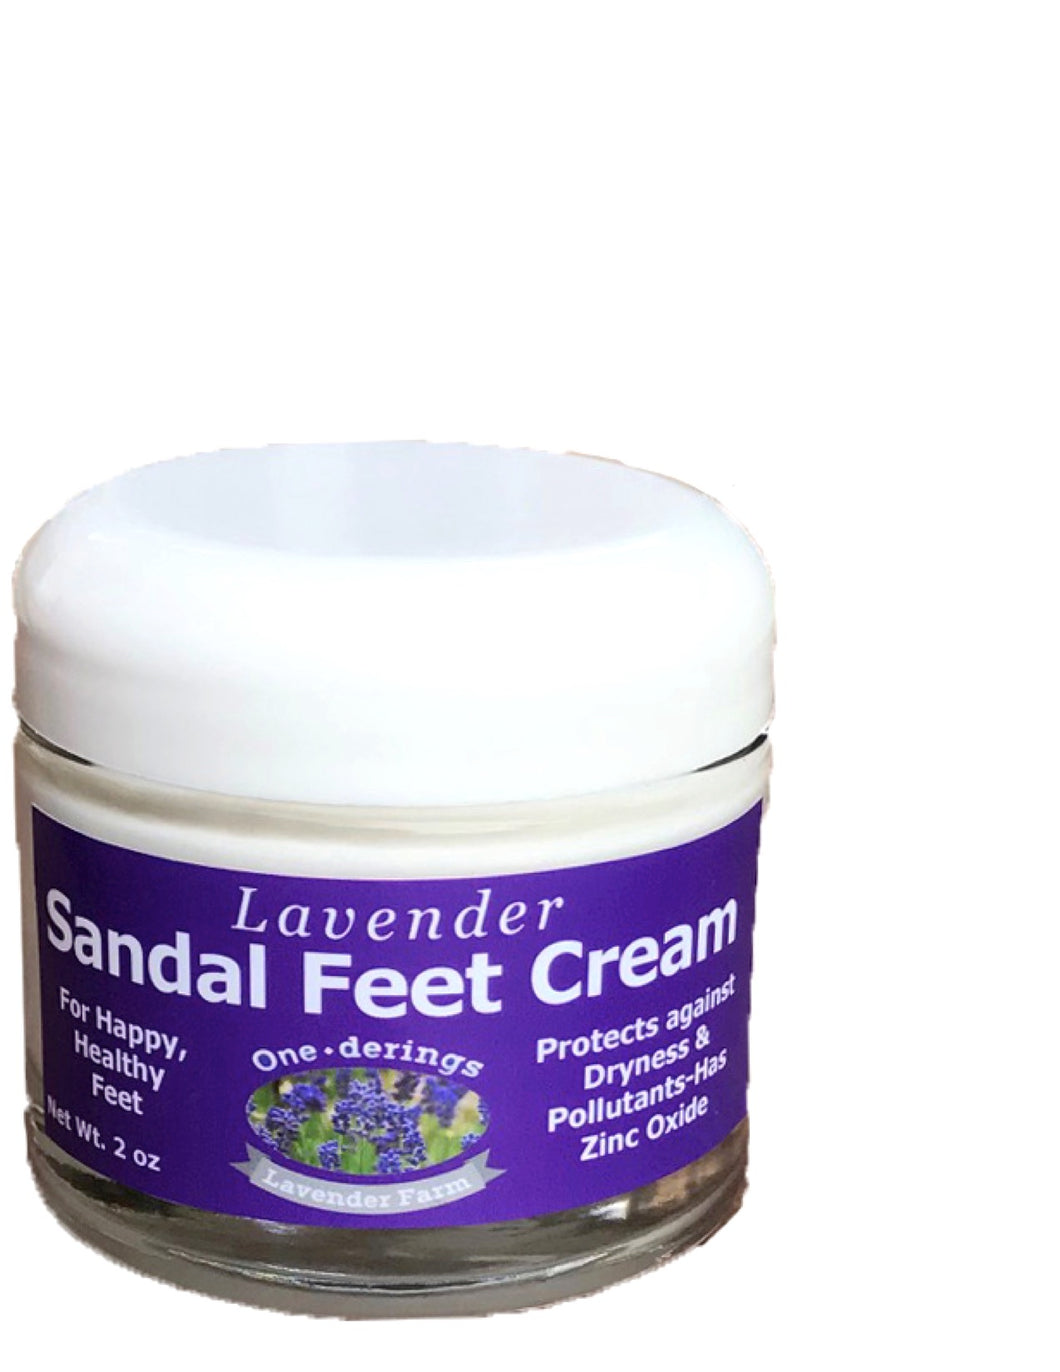 Sandal Feet Cream